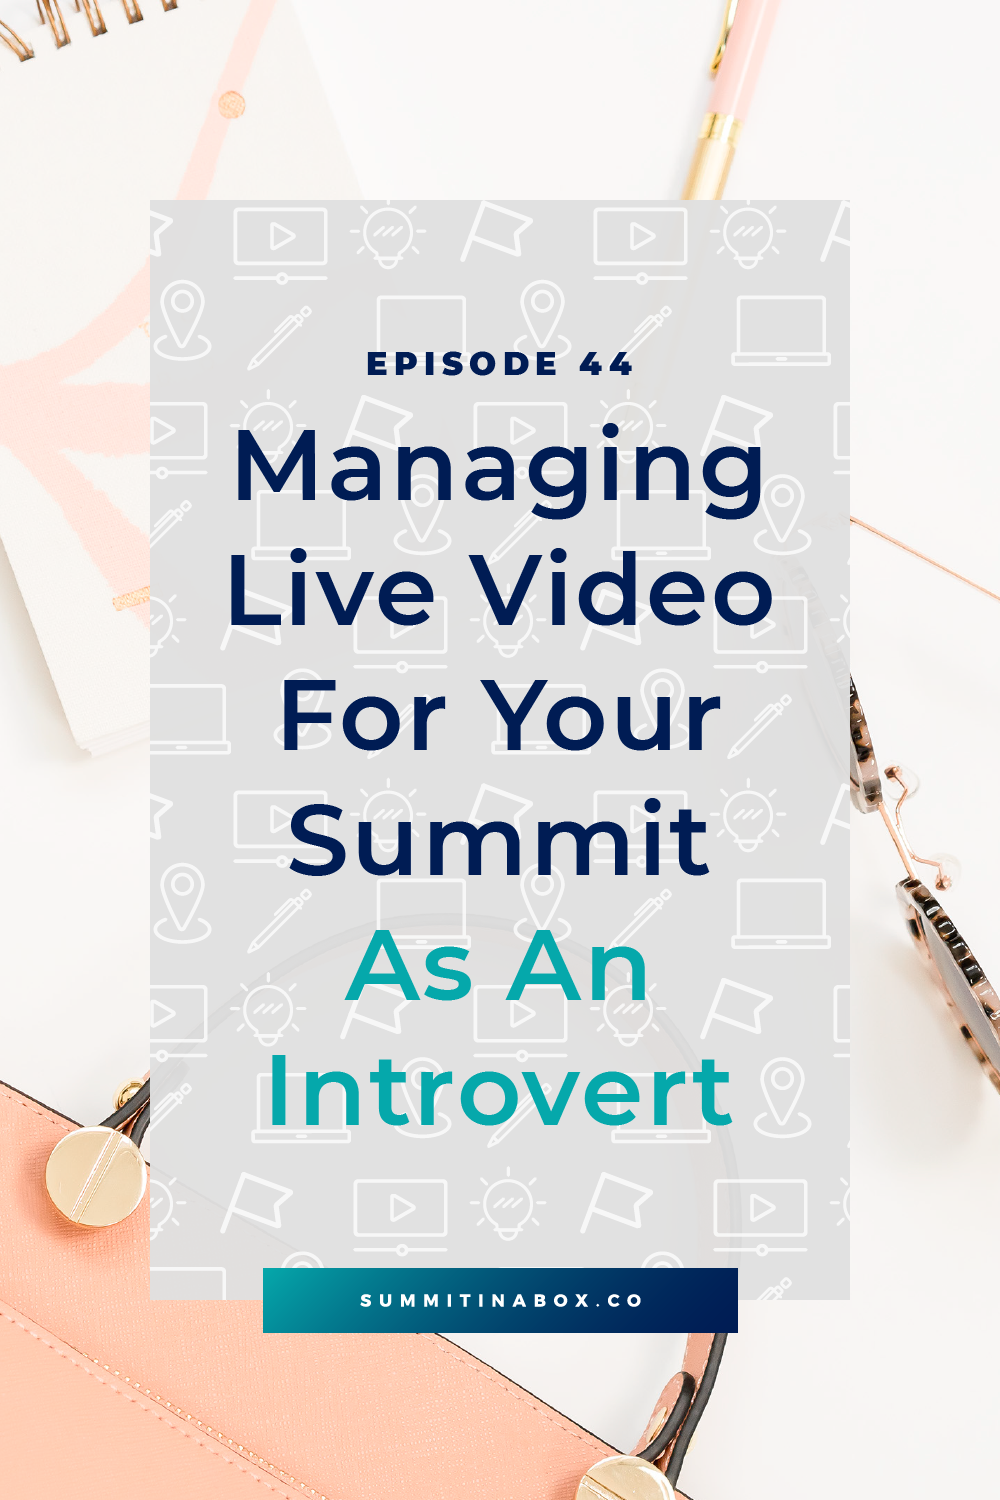 Are you an introvert who doesn't love live video? It's an important part of hosting a virtual summit, but it's possible to manage it effectively. Here's how!